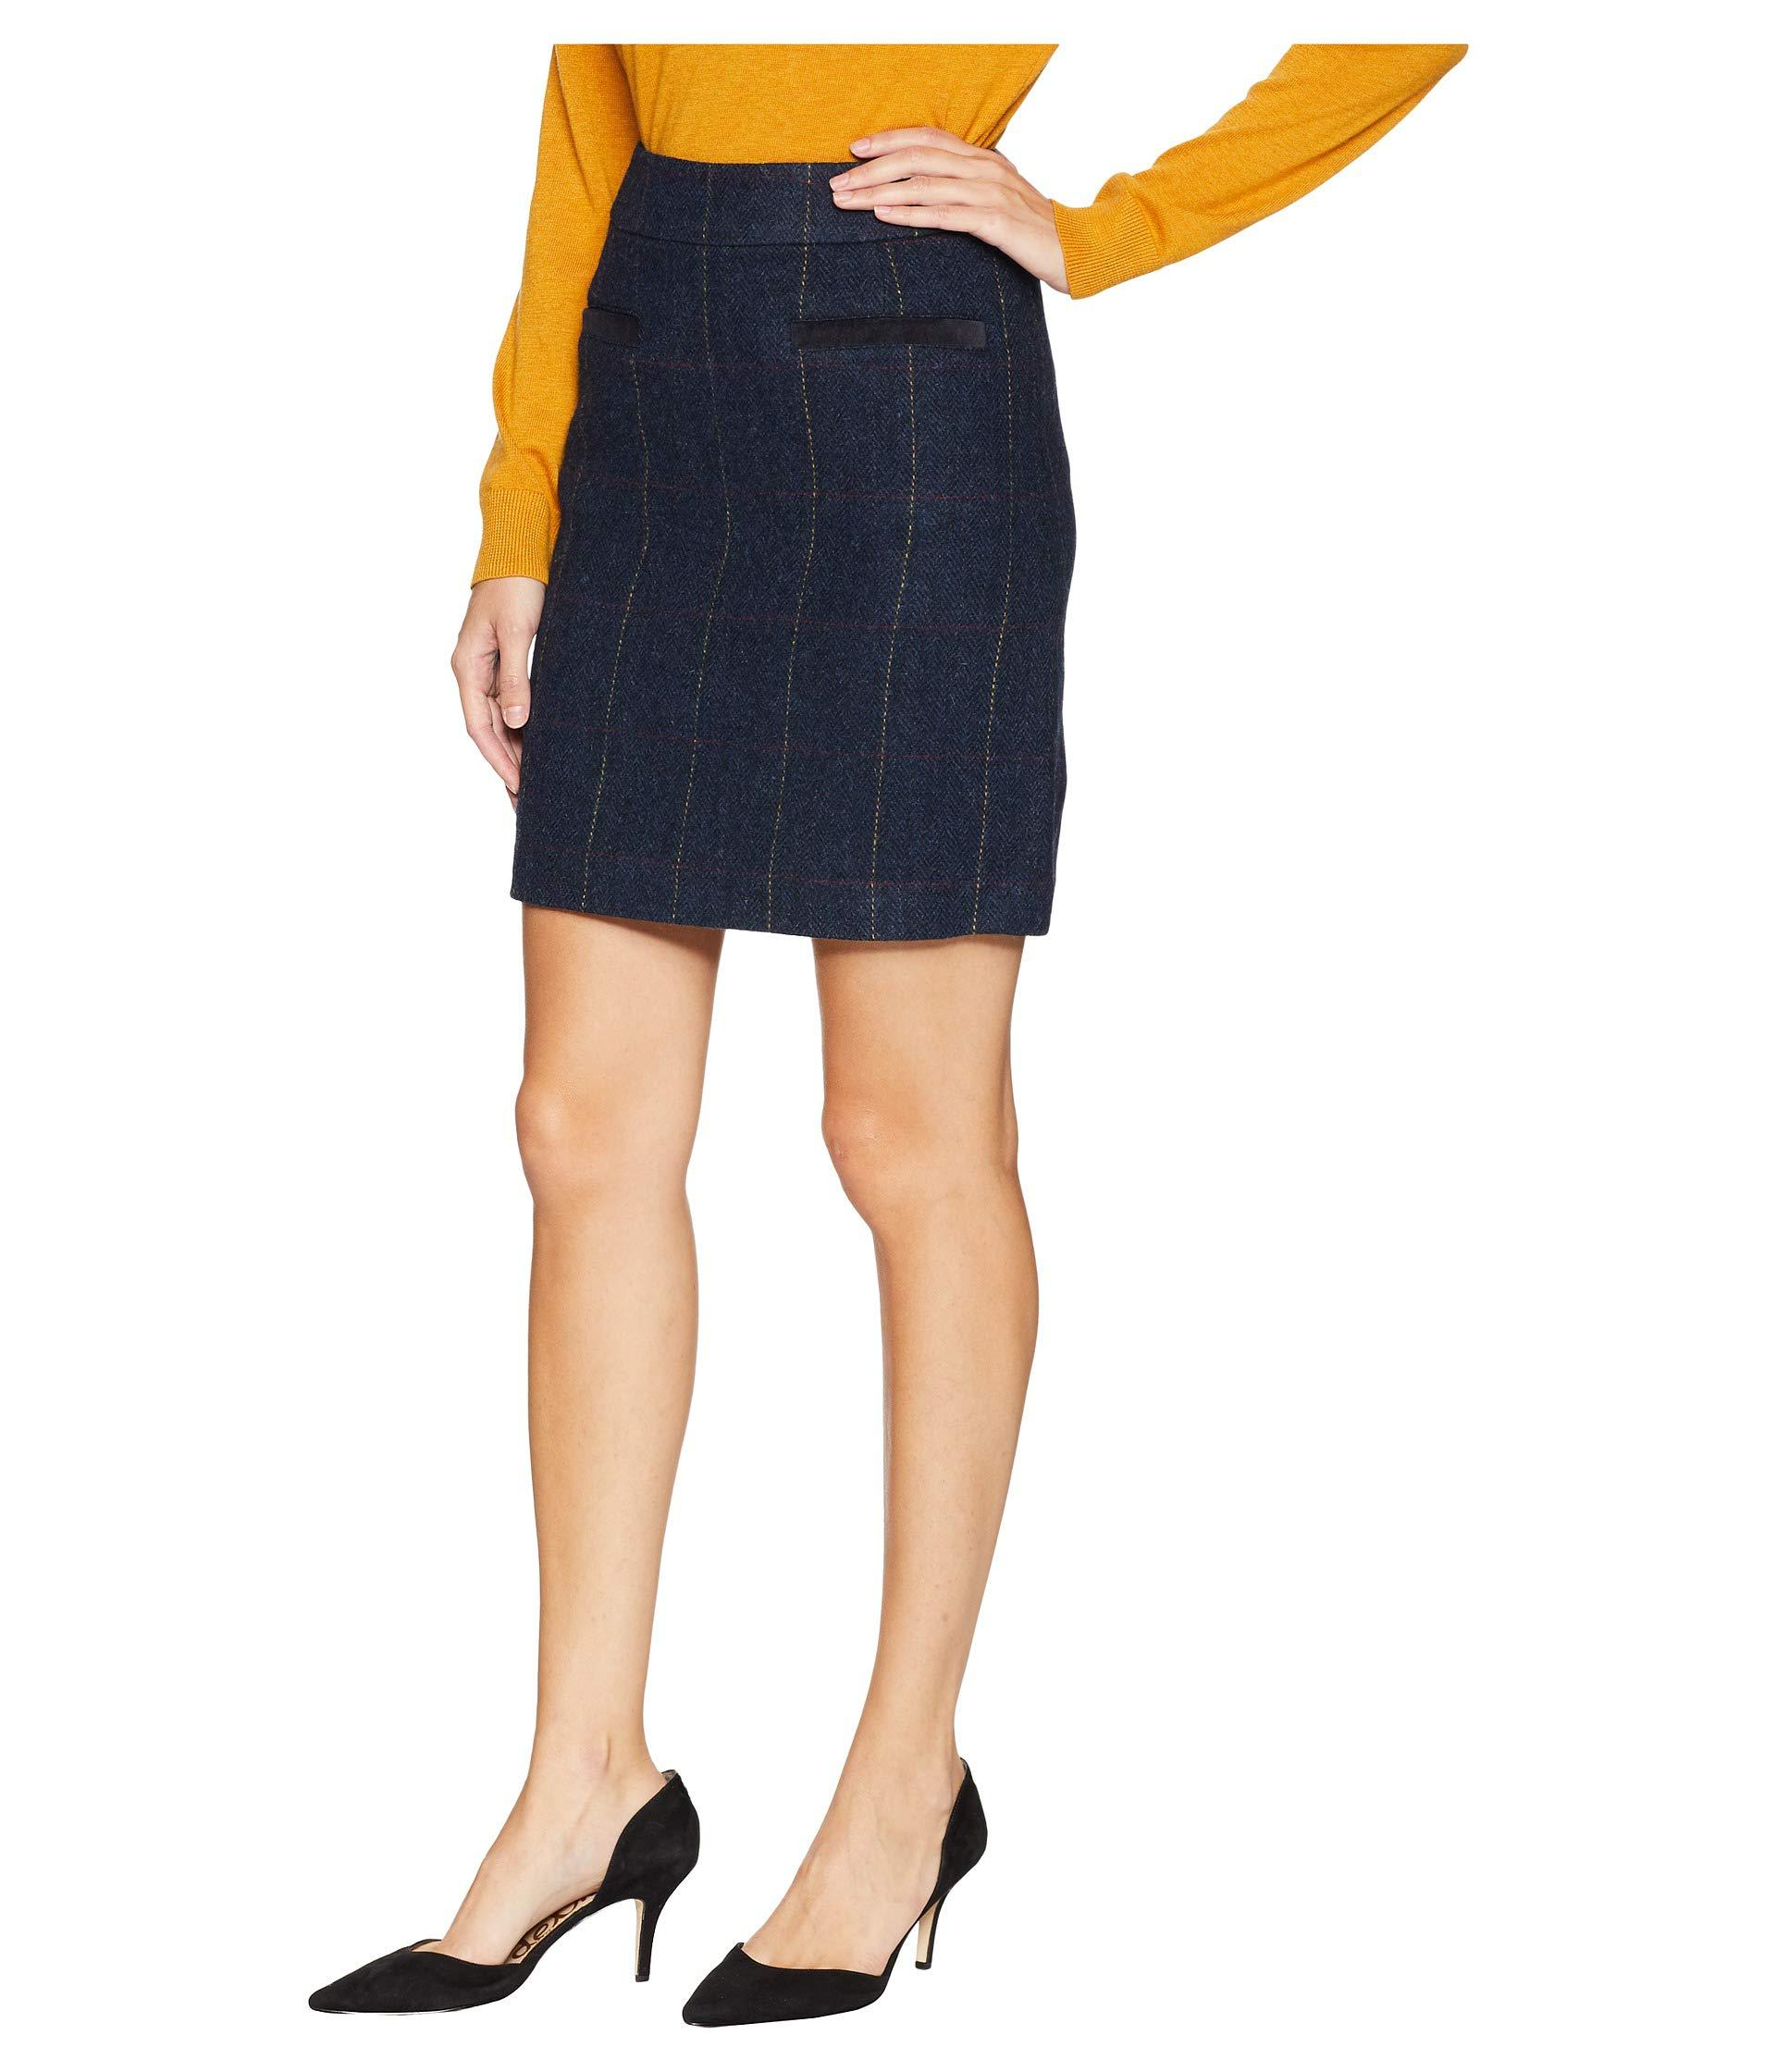 0a979289ca Lyst - Joules Sheridan Tweed Skirt in Blue - Save 43%